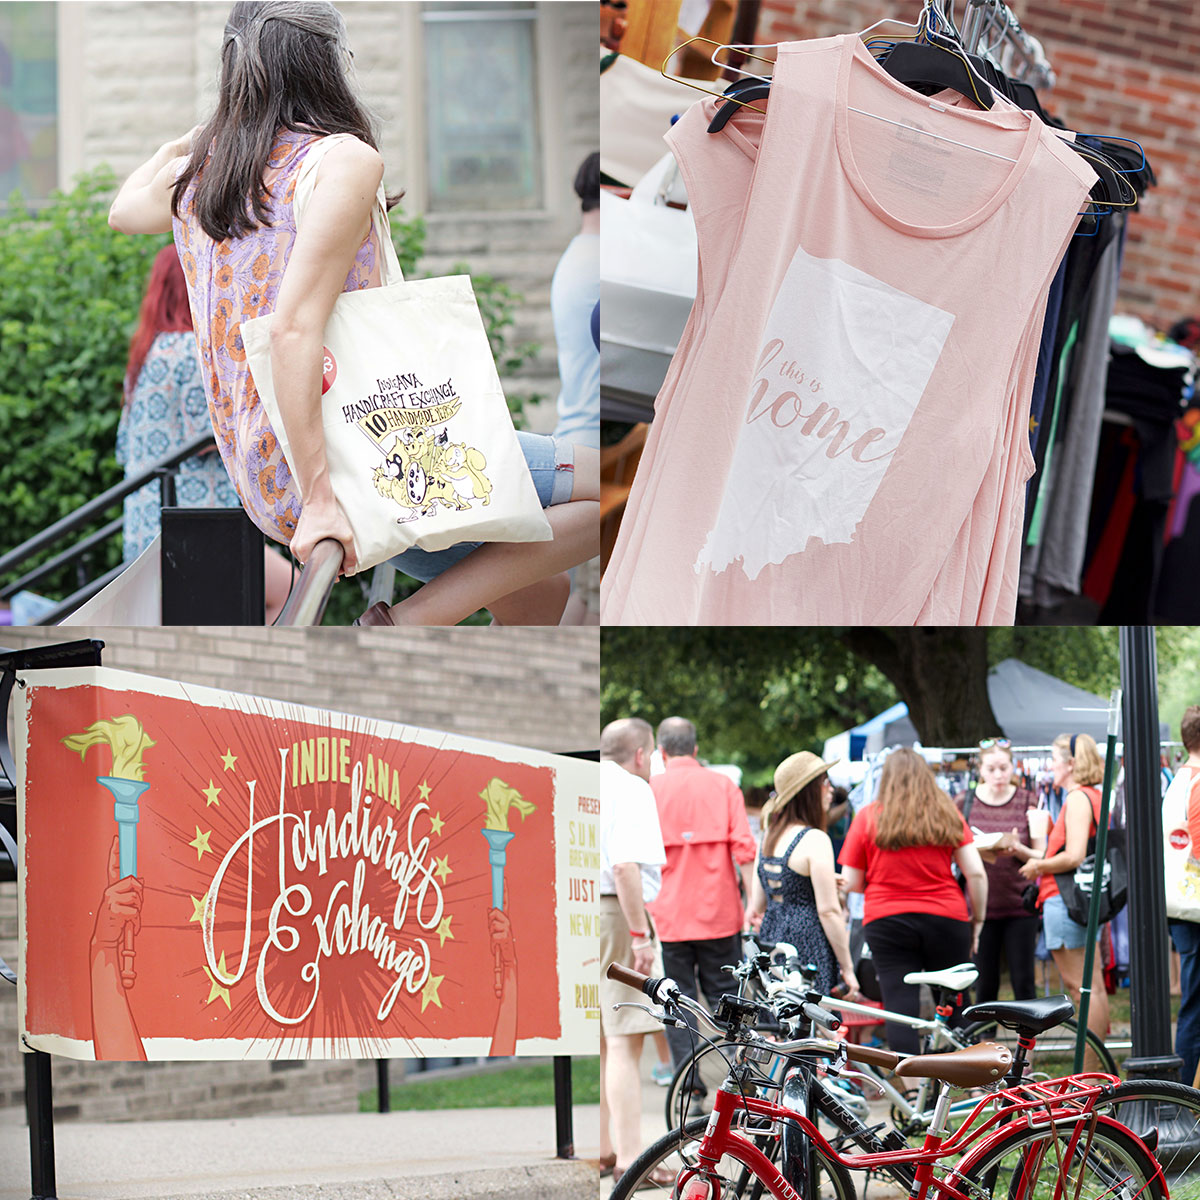 INDIEana Handicraft Exchange 2018 Summer Show at Harrison Center on June 16, 12pm-8pm.